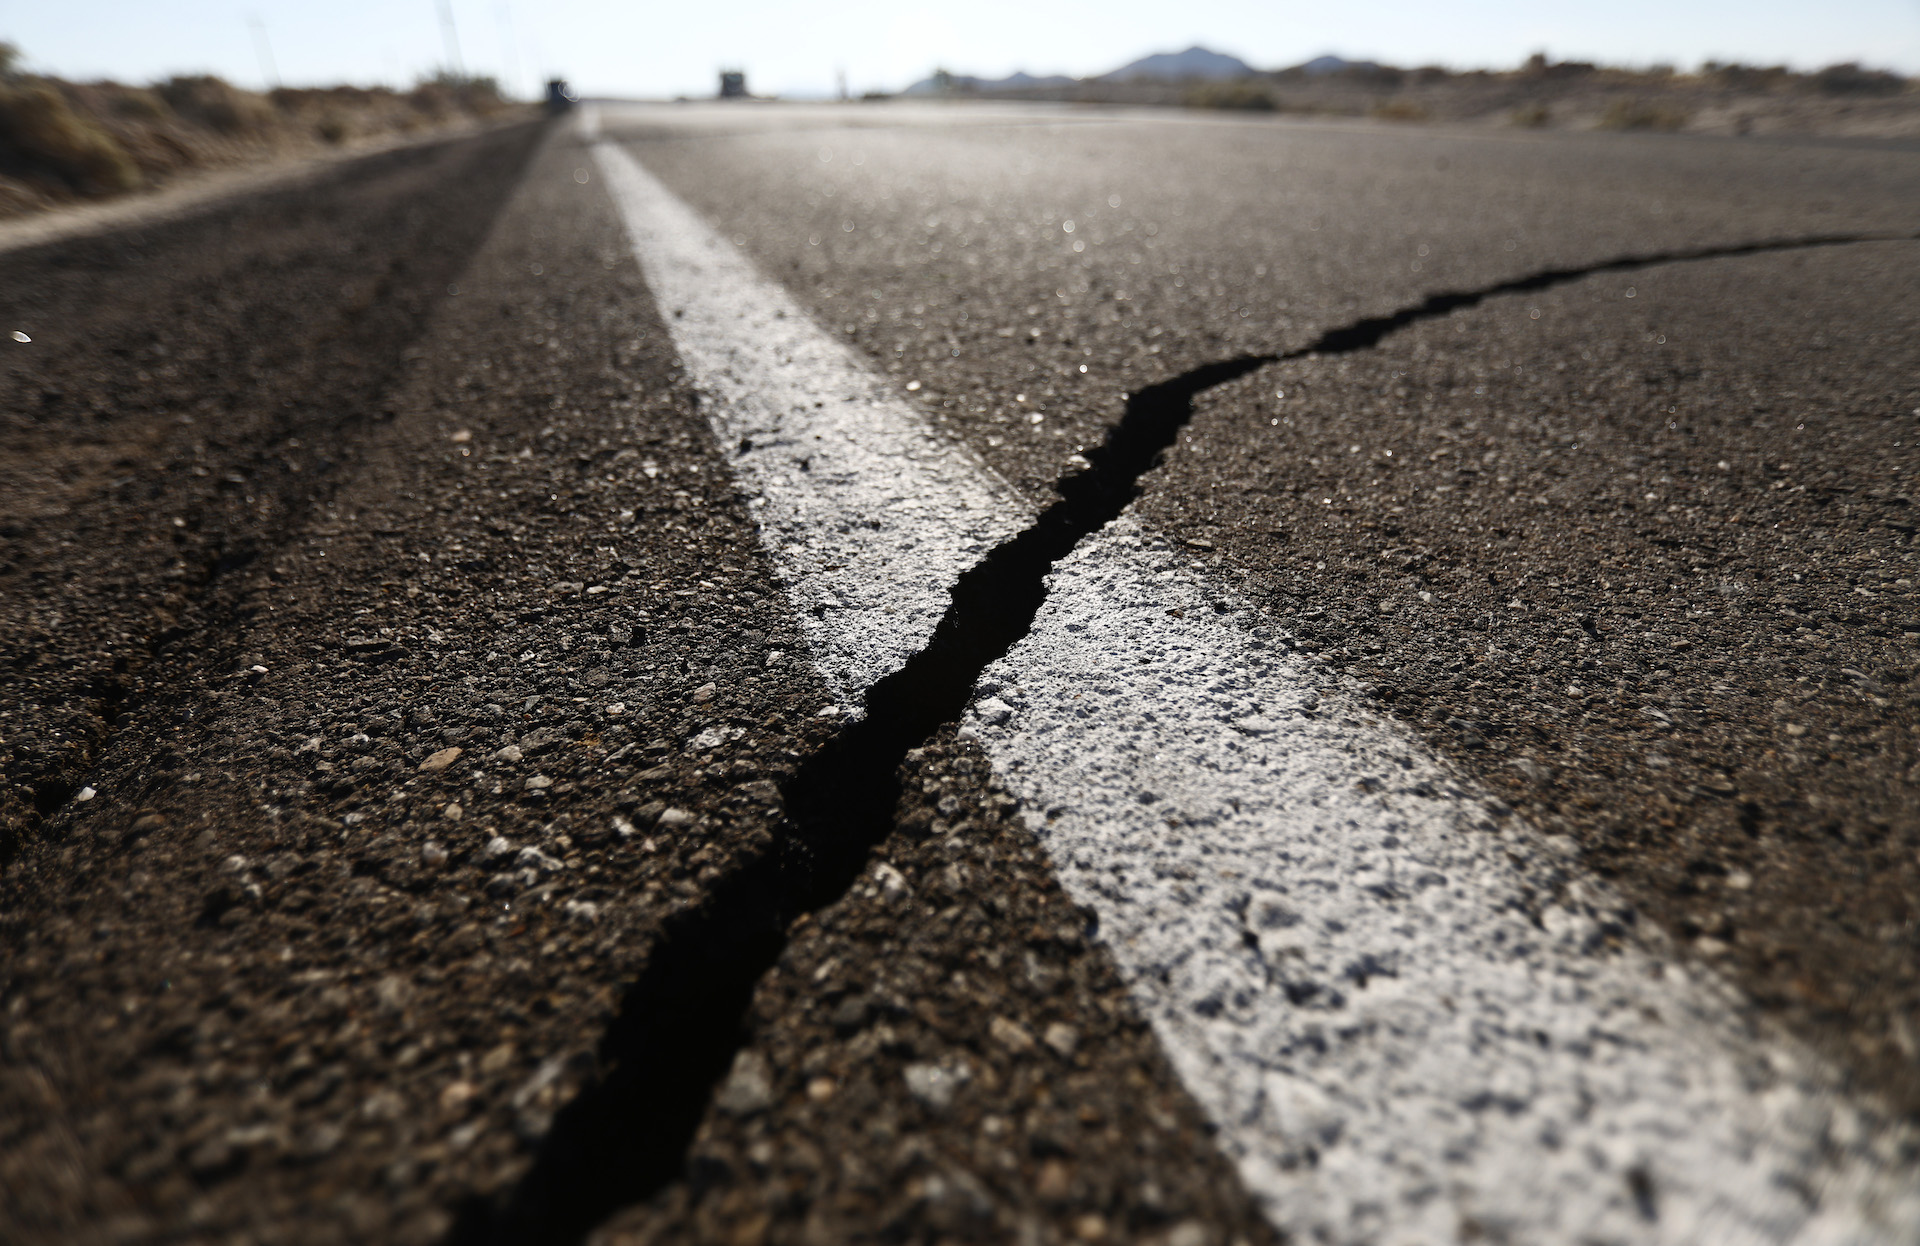 Mojave Desert Rocked by Followup Quake, This One Magnitude 7.1